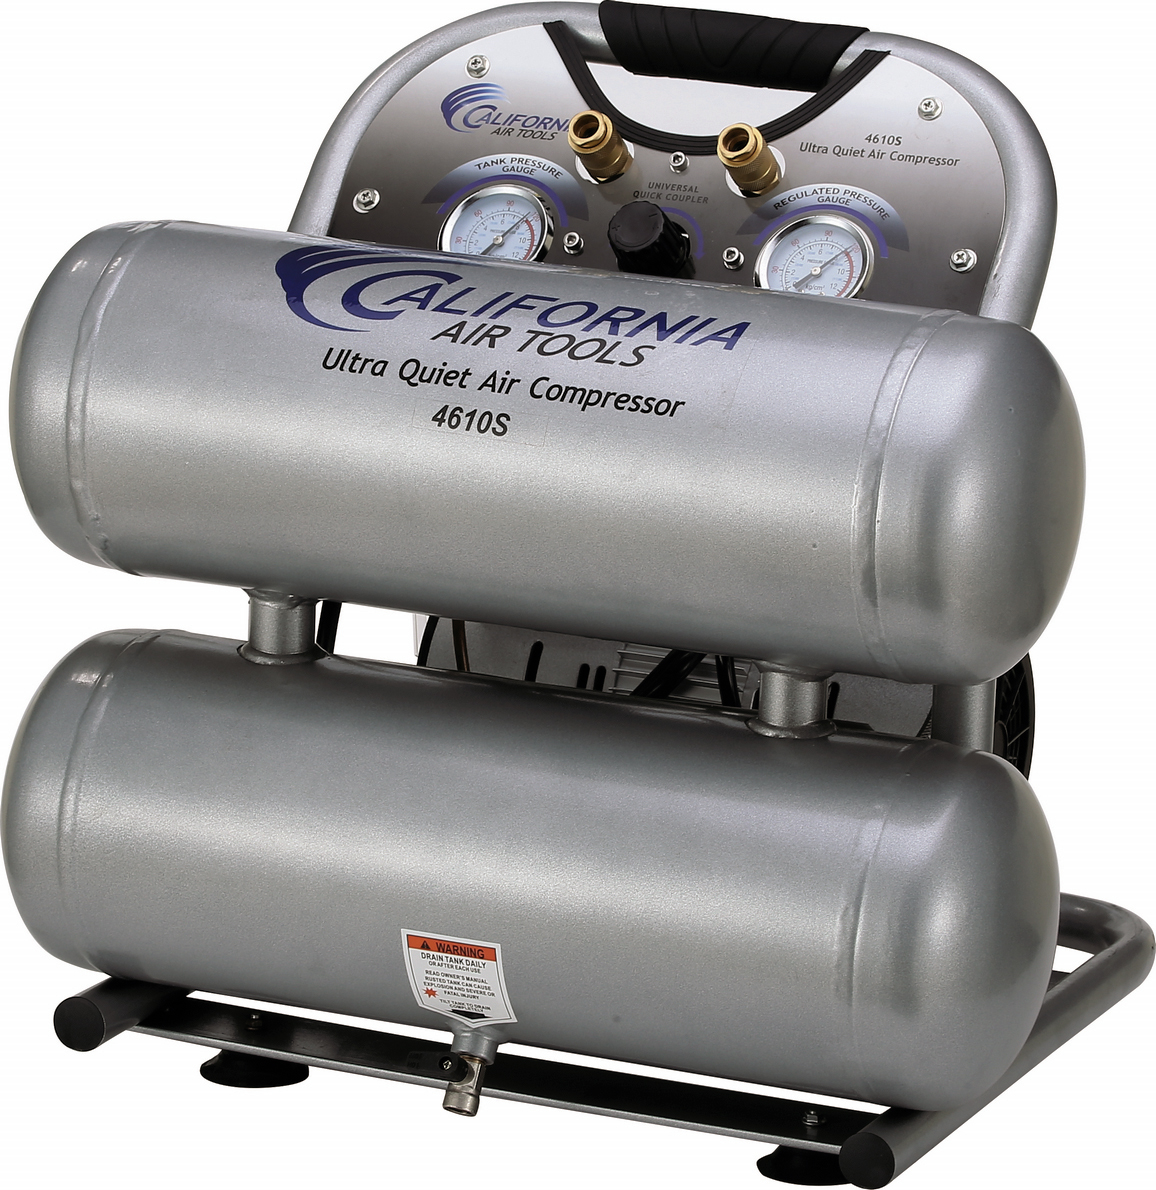 California Air Tools 4610S Ultra Quiet & Oil-Free 1.0 Hp, 4.6 Gal. Steel Twin Tank Air Compressor